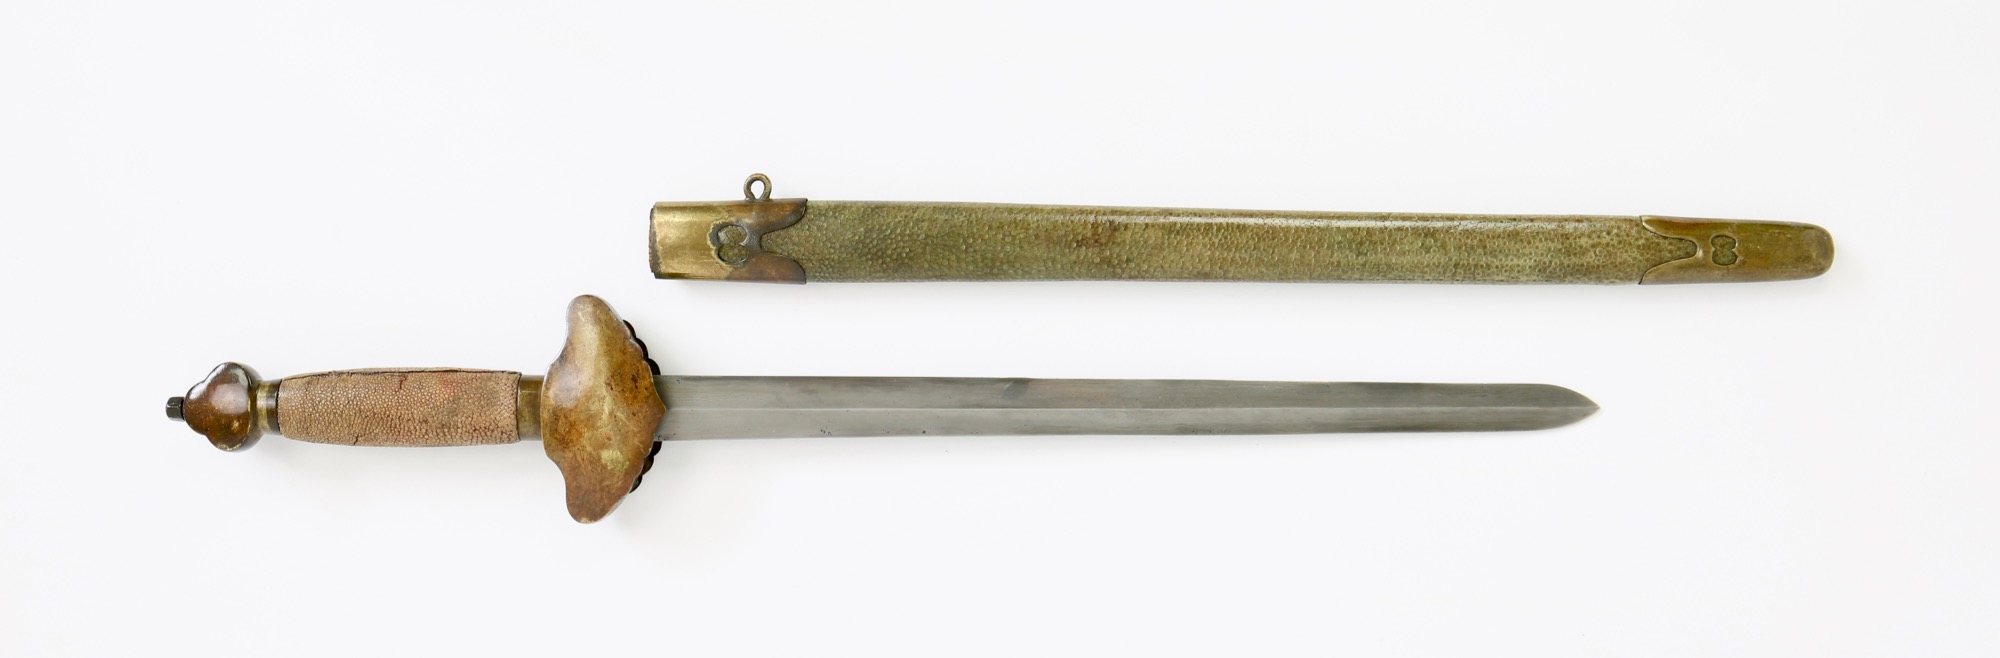 A Chinese shortsword with fine blade